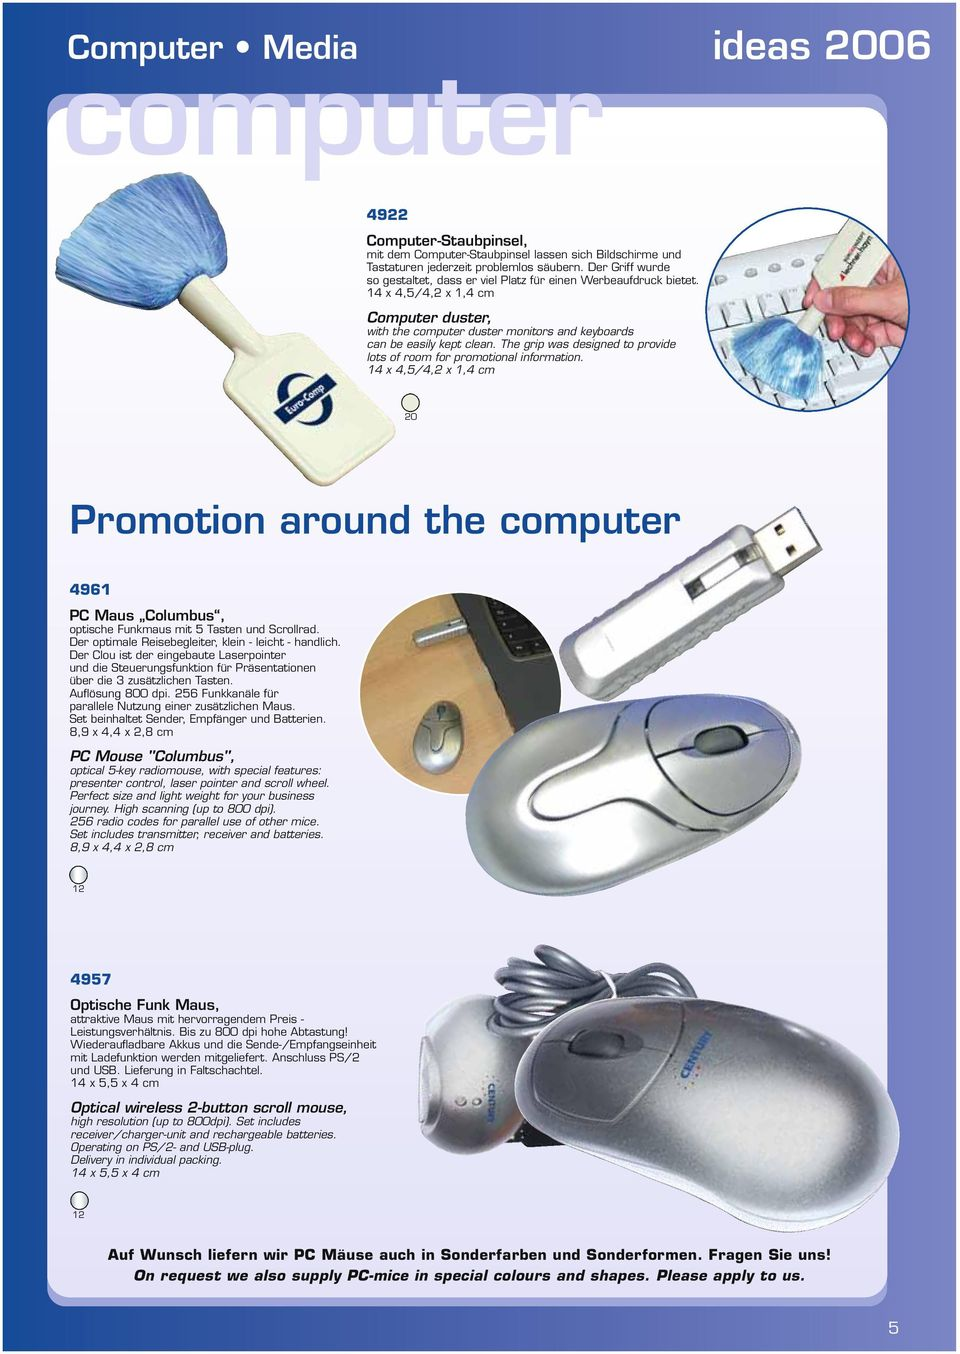 The grip was designed to provide lots of room for promotional information. 14 x 4,5/4,2 x 1,4 cm 20 Promotion around the computer 4961 PC Maus Columbus, optische Funkmaus mit 5 Tasten und Scrollrad.